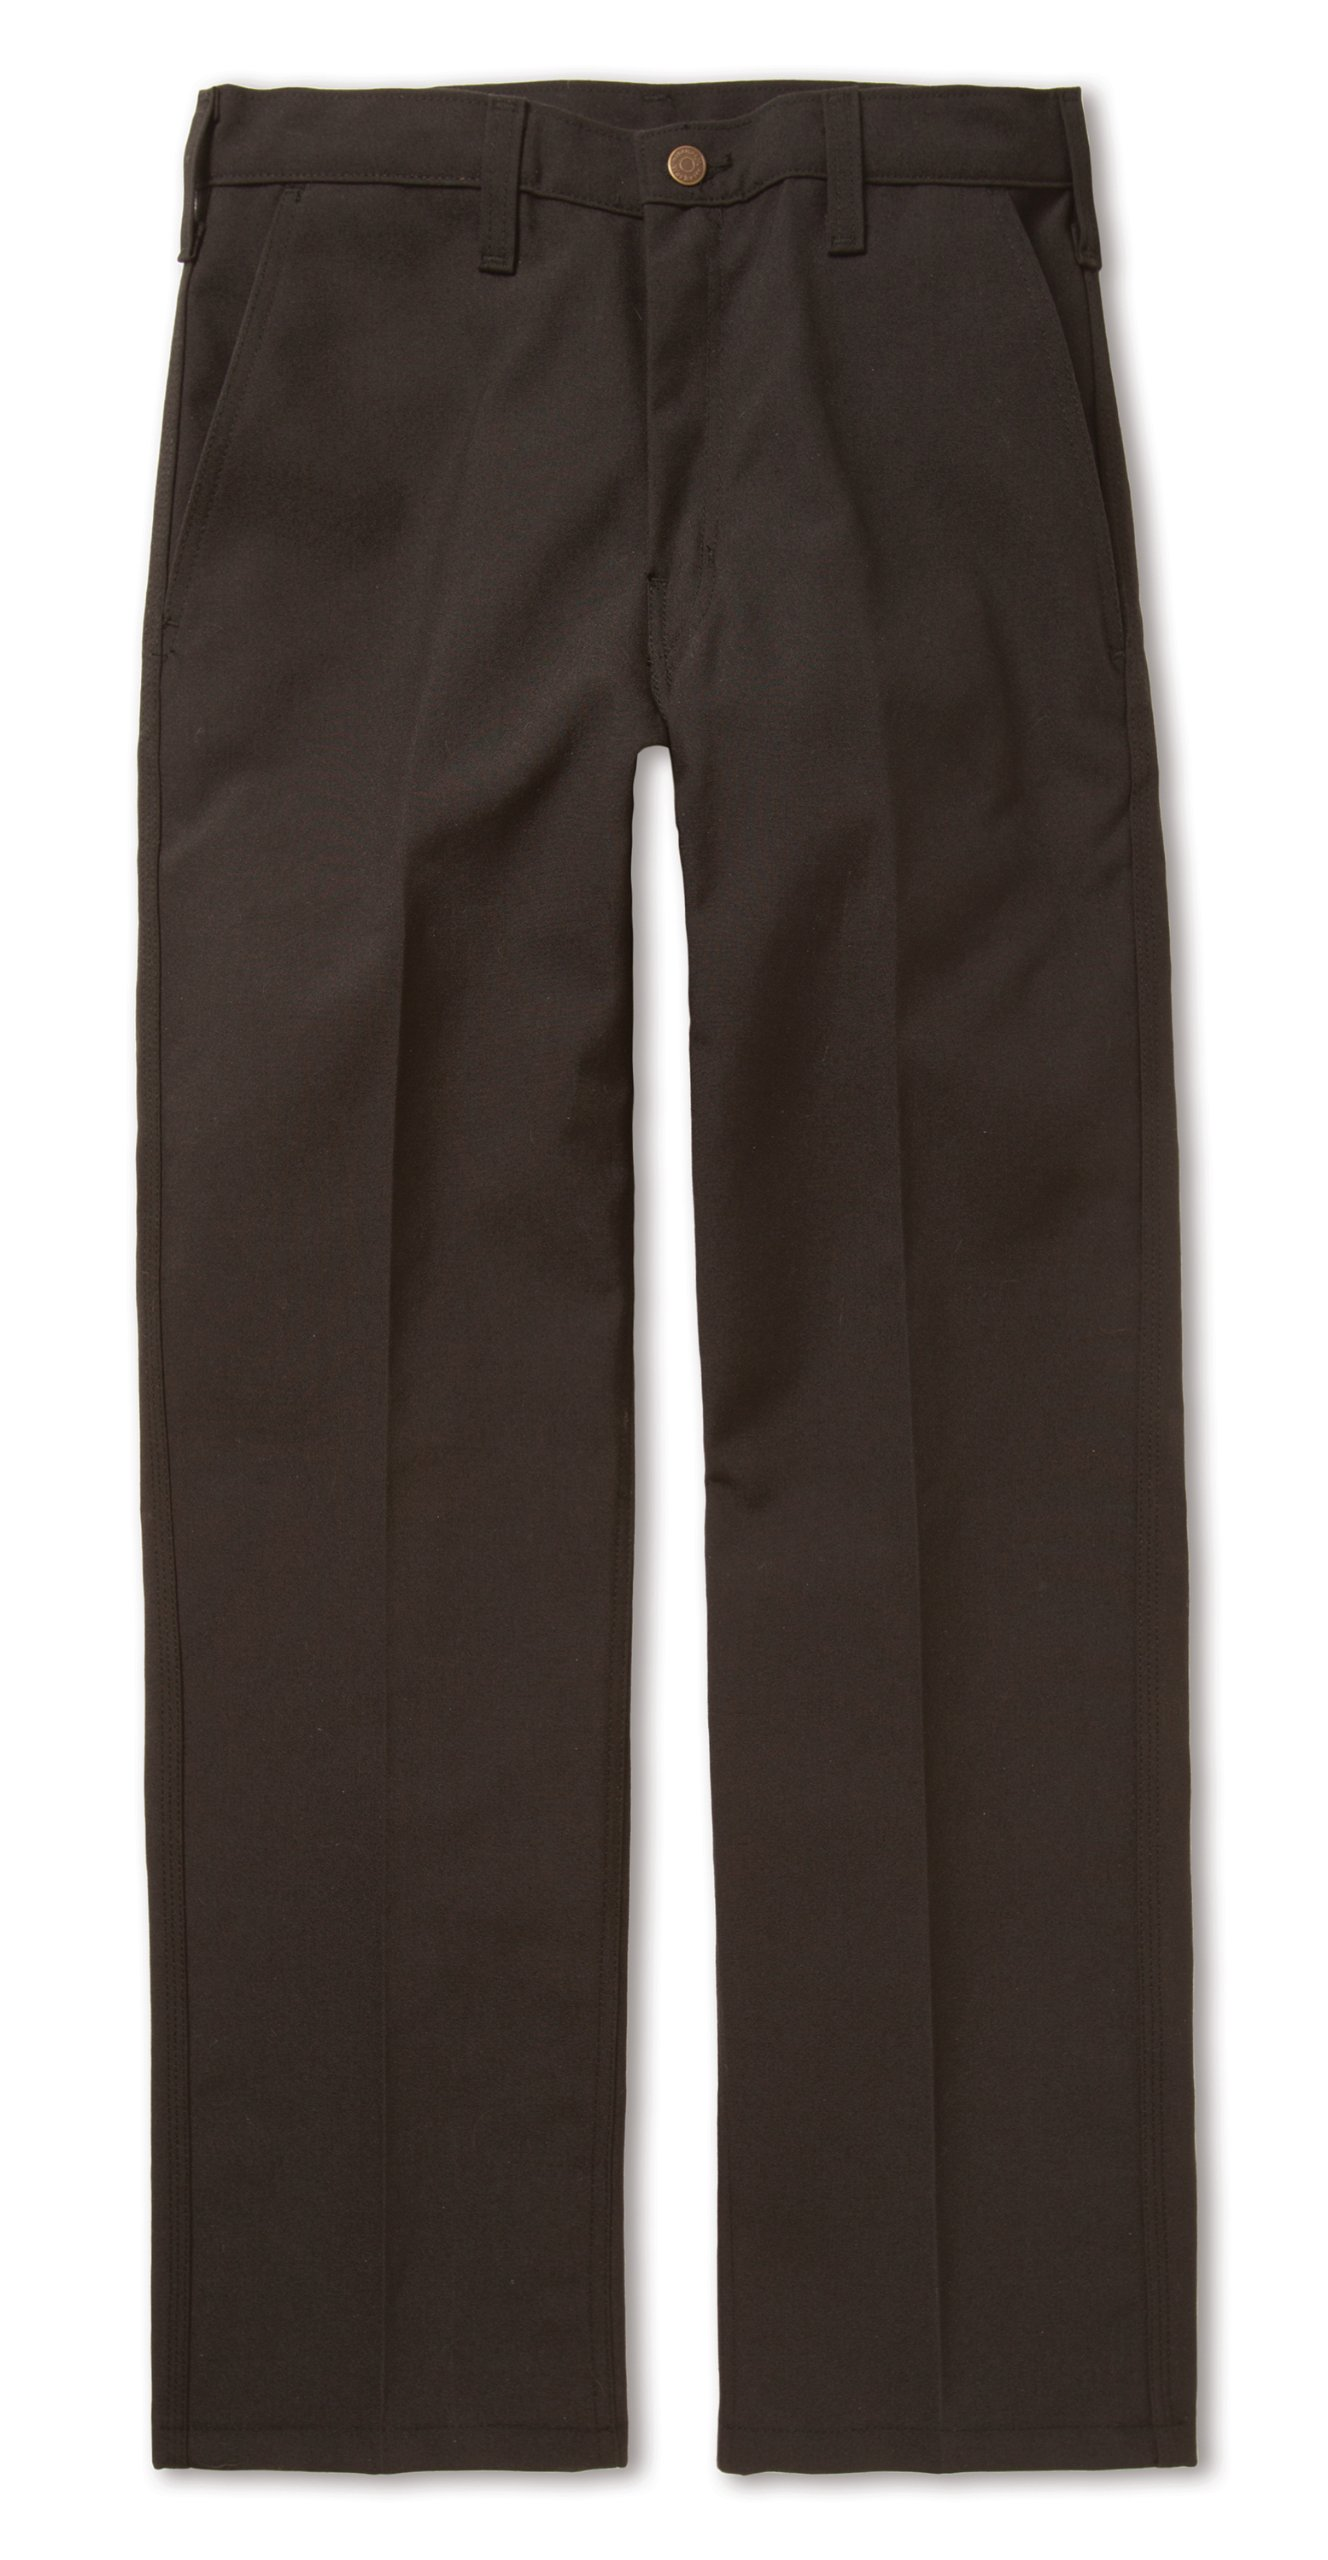 Workrite 402NX75MN34-32 Flame Resistant 7.5 oz Nomex IIIA Full-Cut Industrial Pant, 34 Waist Size, 32 Inseam, Midnight Navy